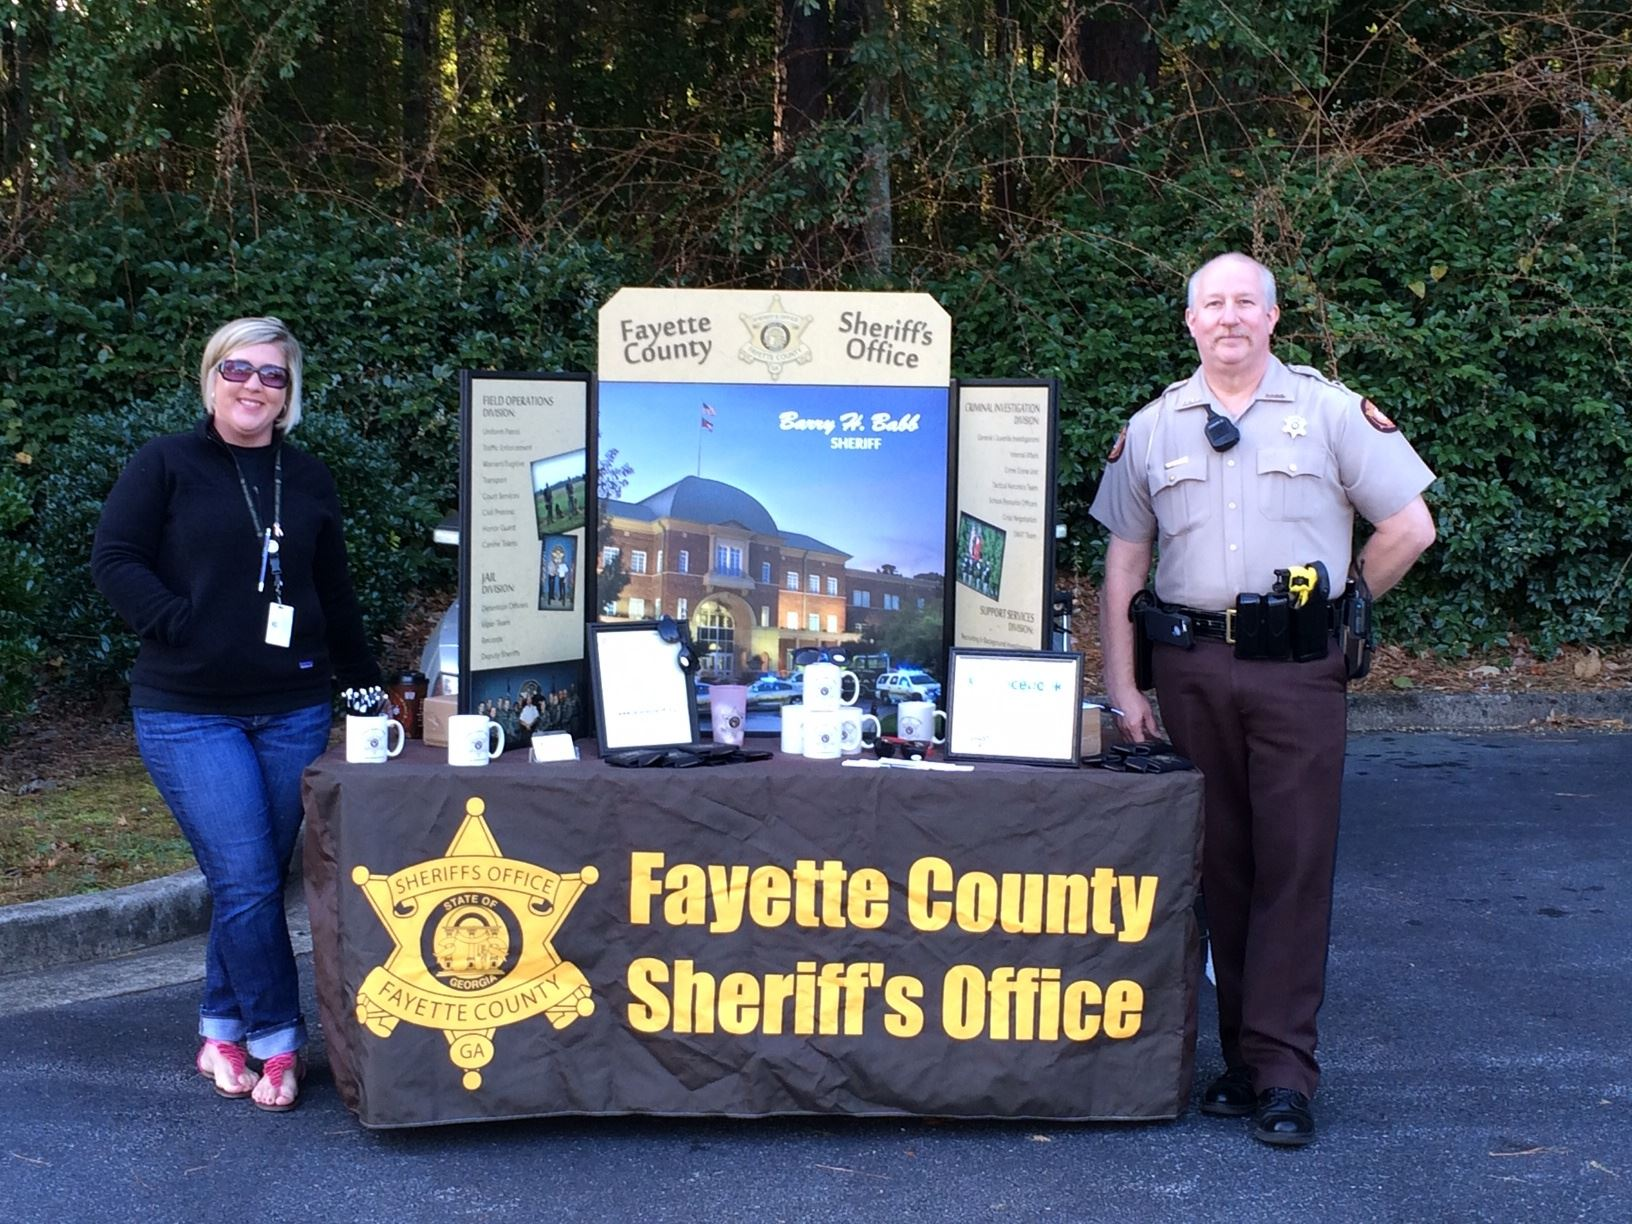 Fayette County Sheriffs Office Table with two People